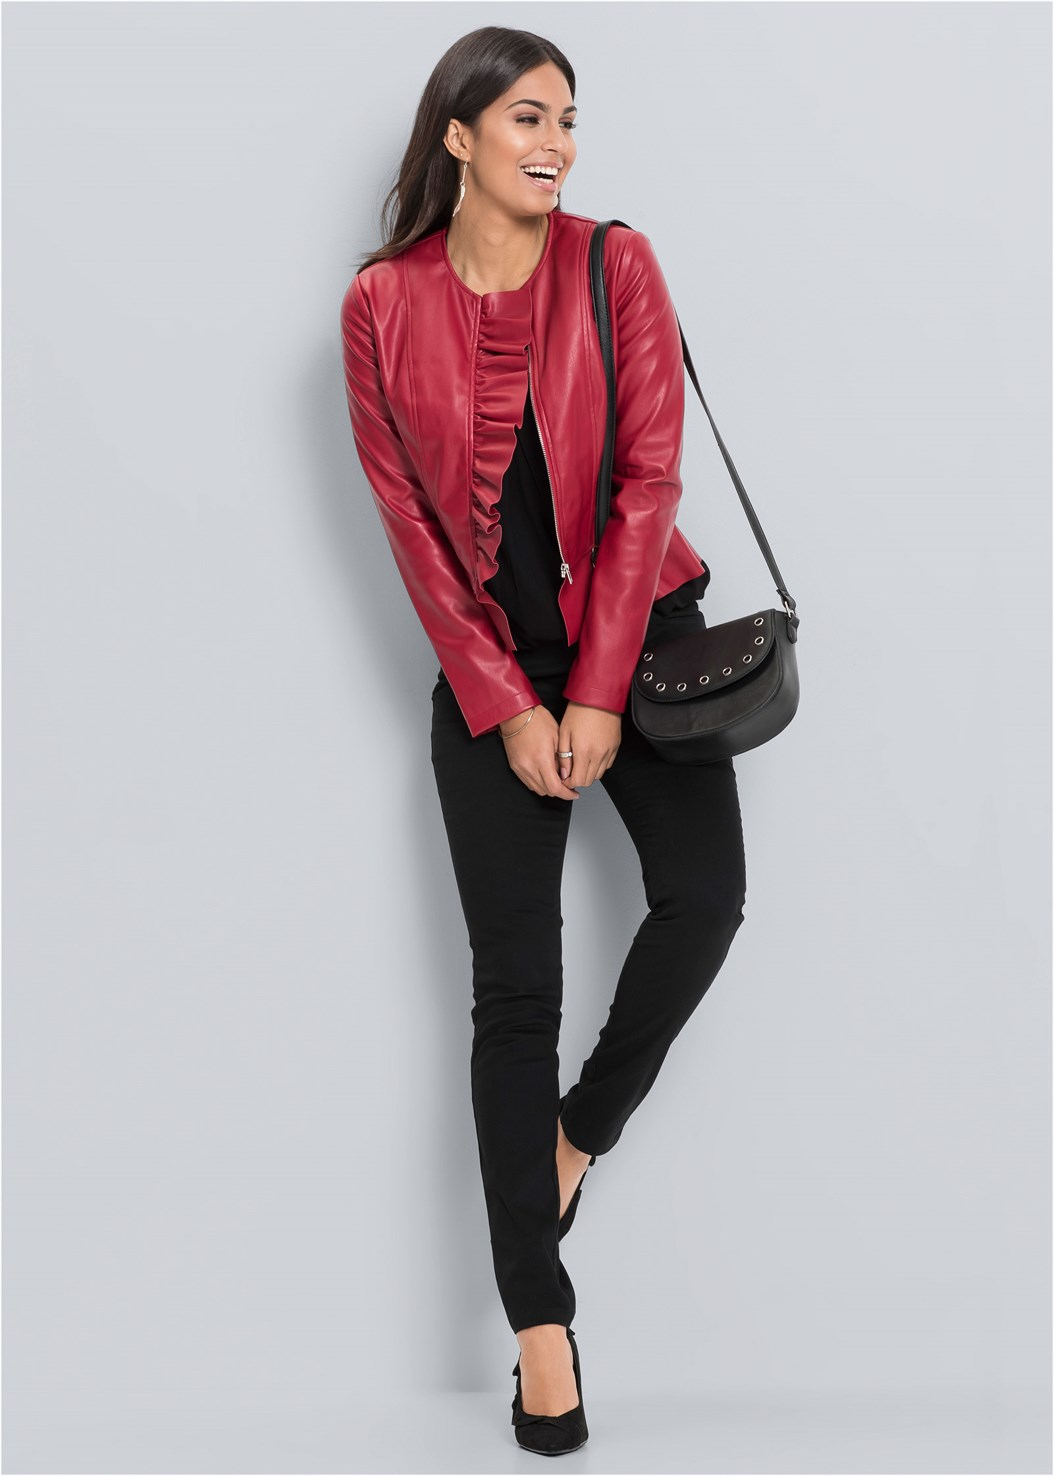 Faux Leather Ruffle Jacket,Kissable Strappy Push Up